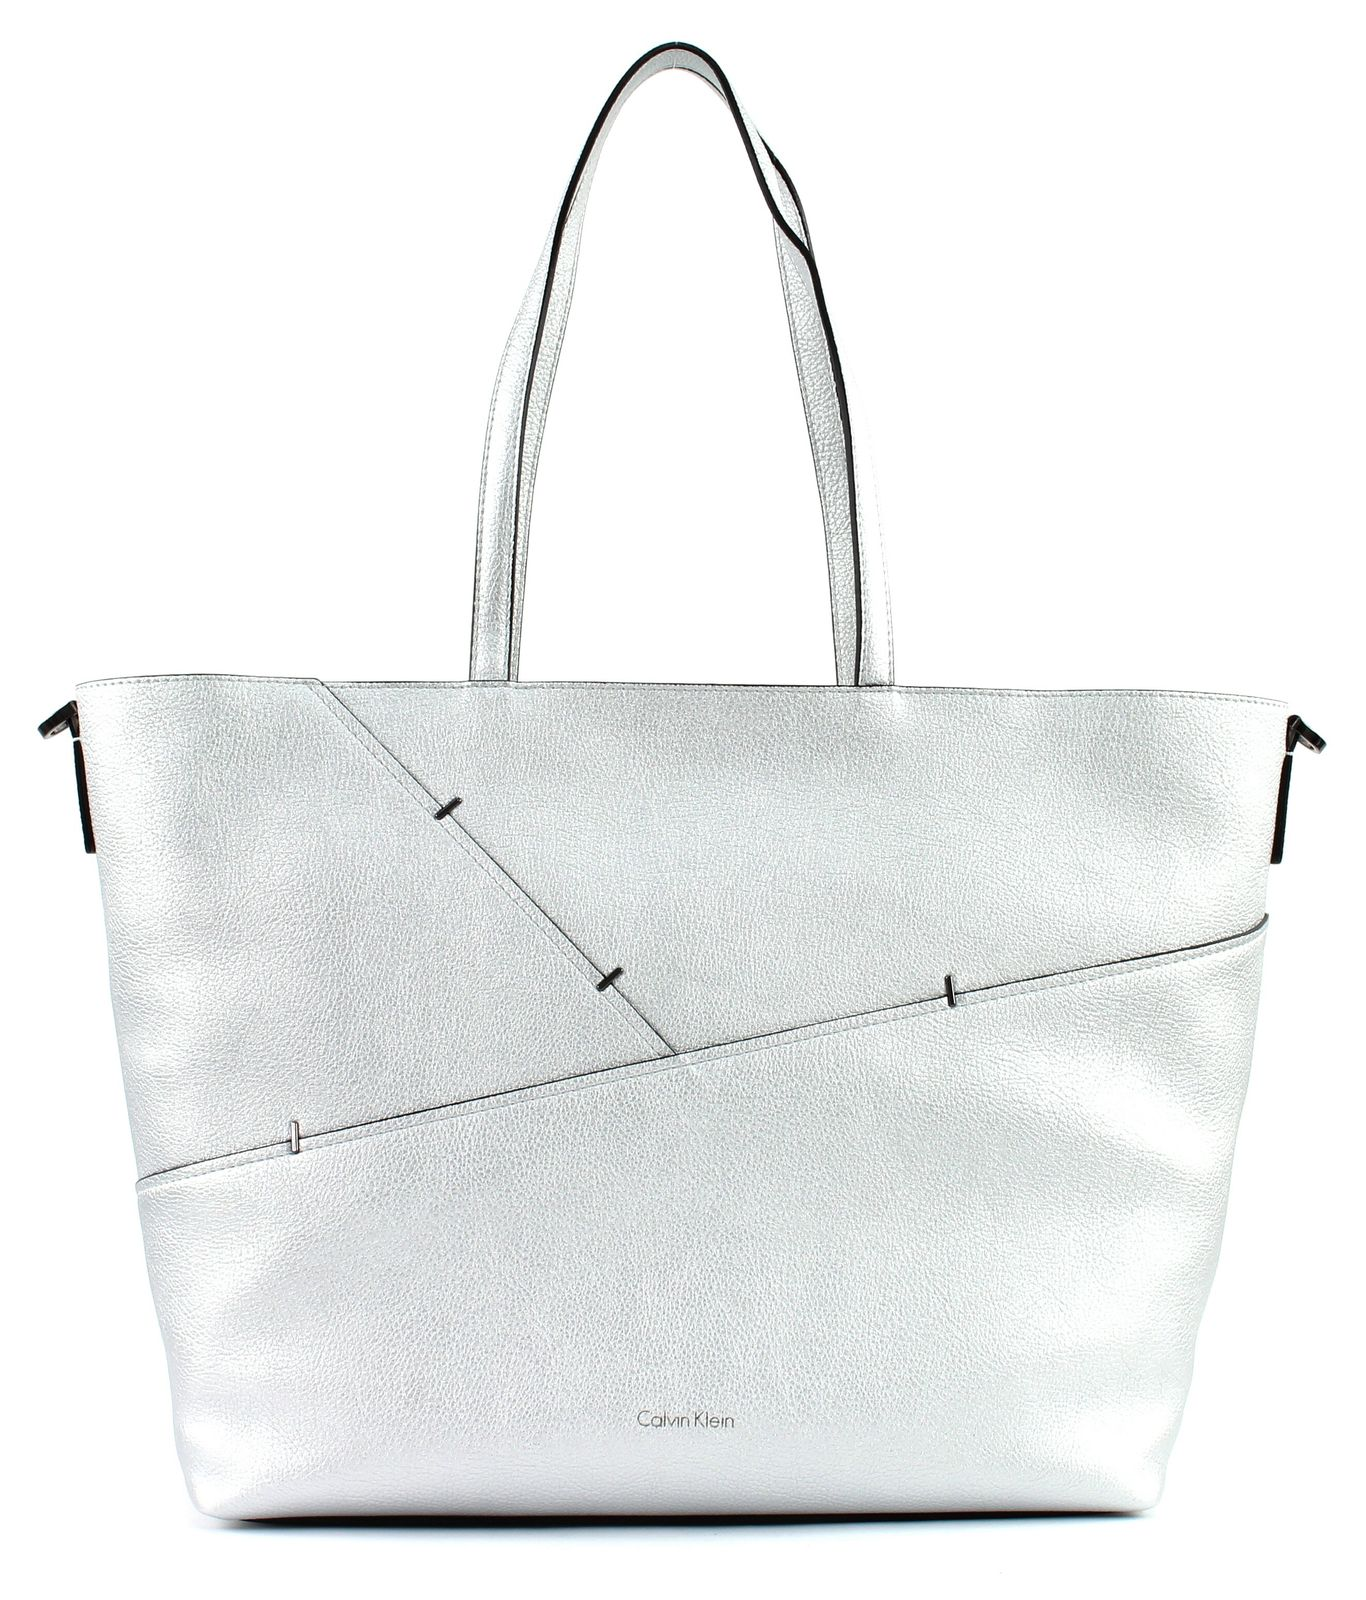 4e3c8773fa ... Cash on Delivery, Invoice and sofortüberweisung.deCalvin Klein Luna  Medium Tote Stapler Silver / 139,90 €*Only possible if you pay by Paypal,  ...